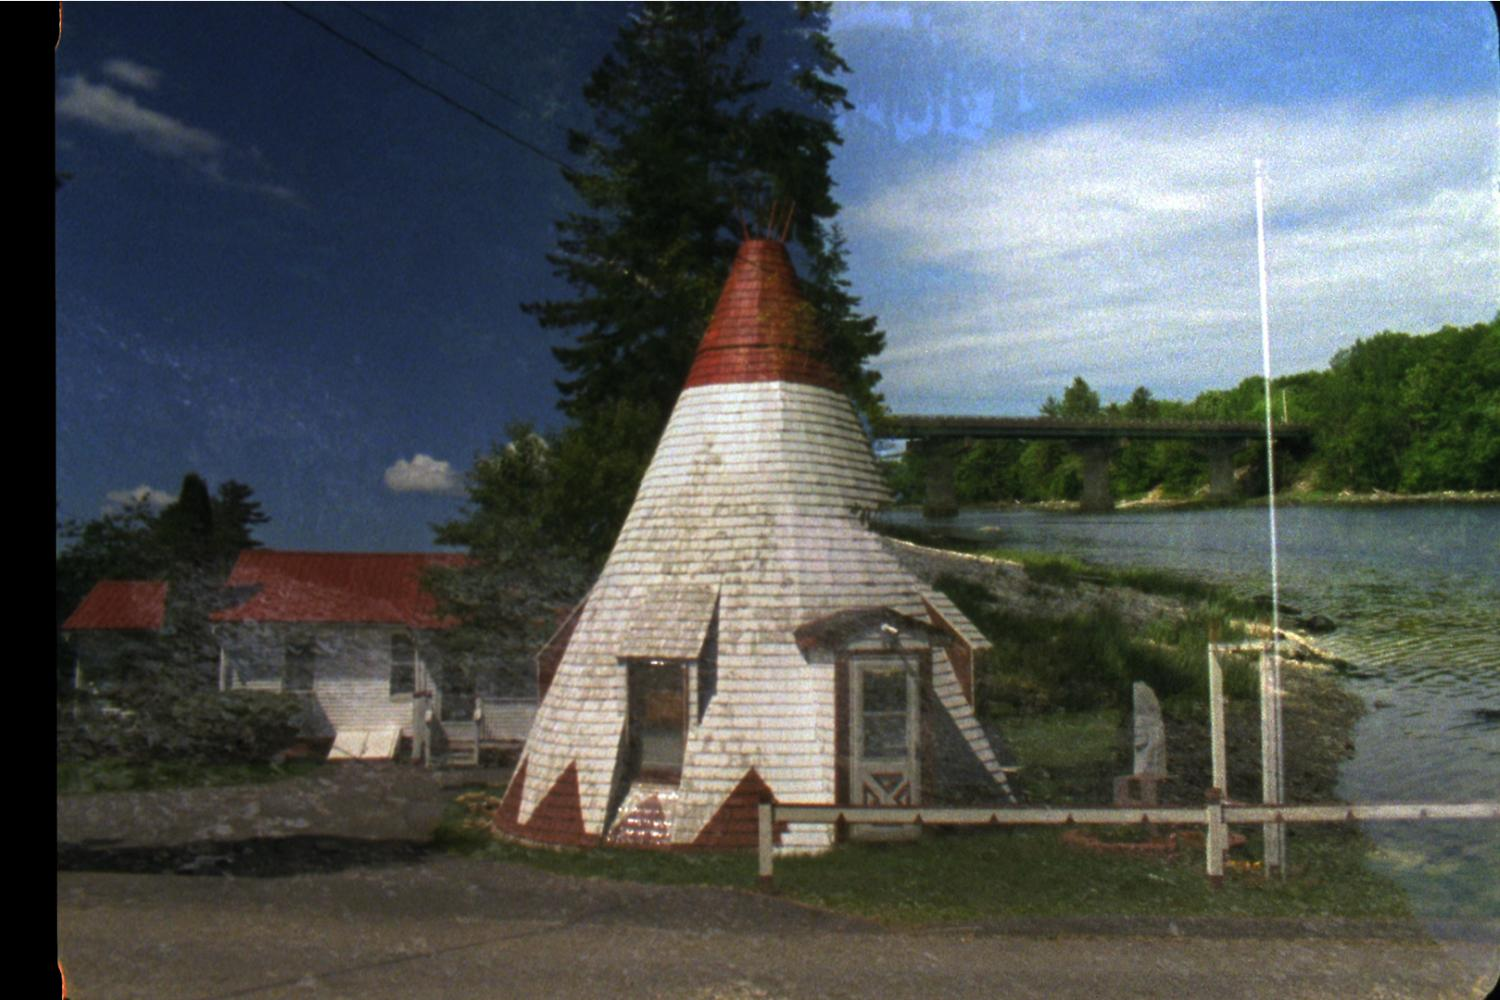 Film still with teepee house